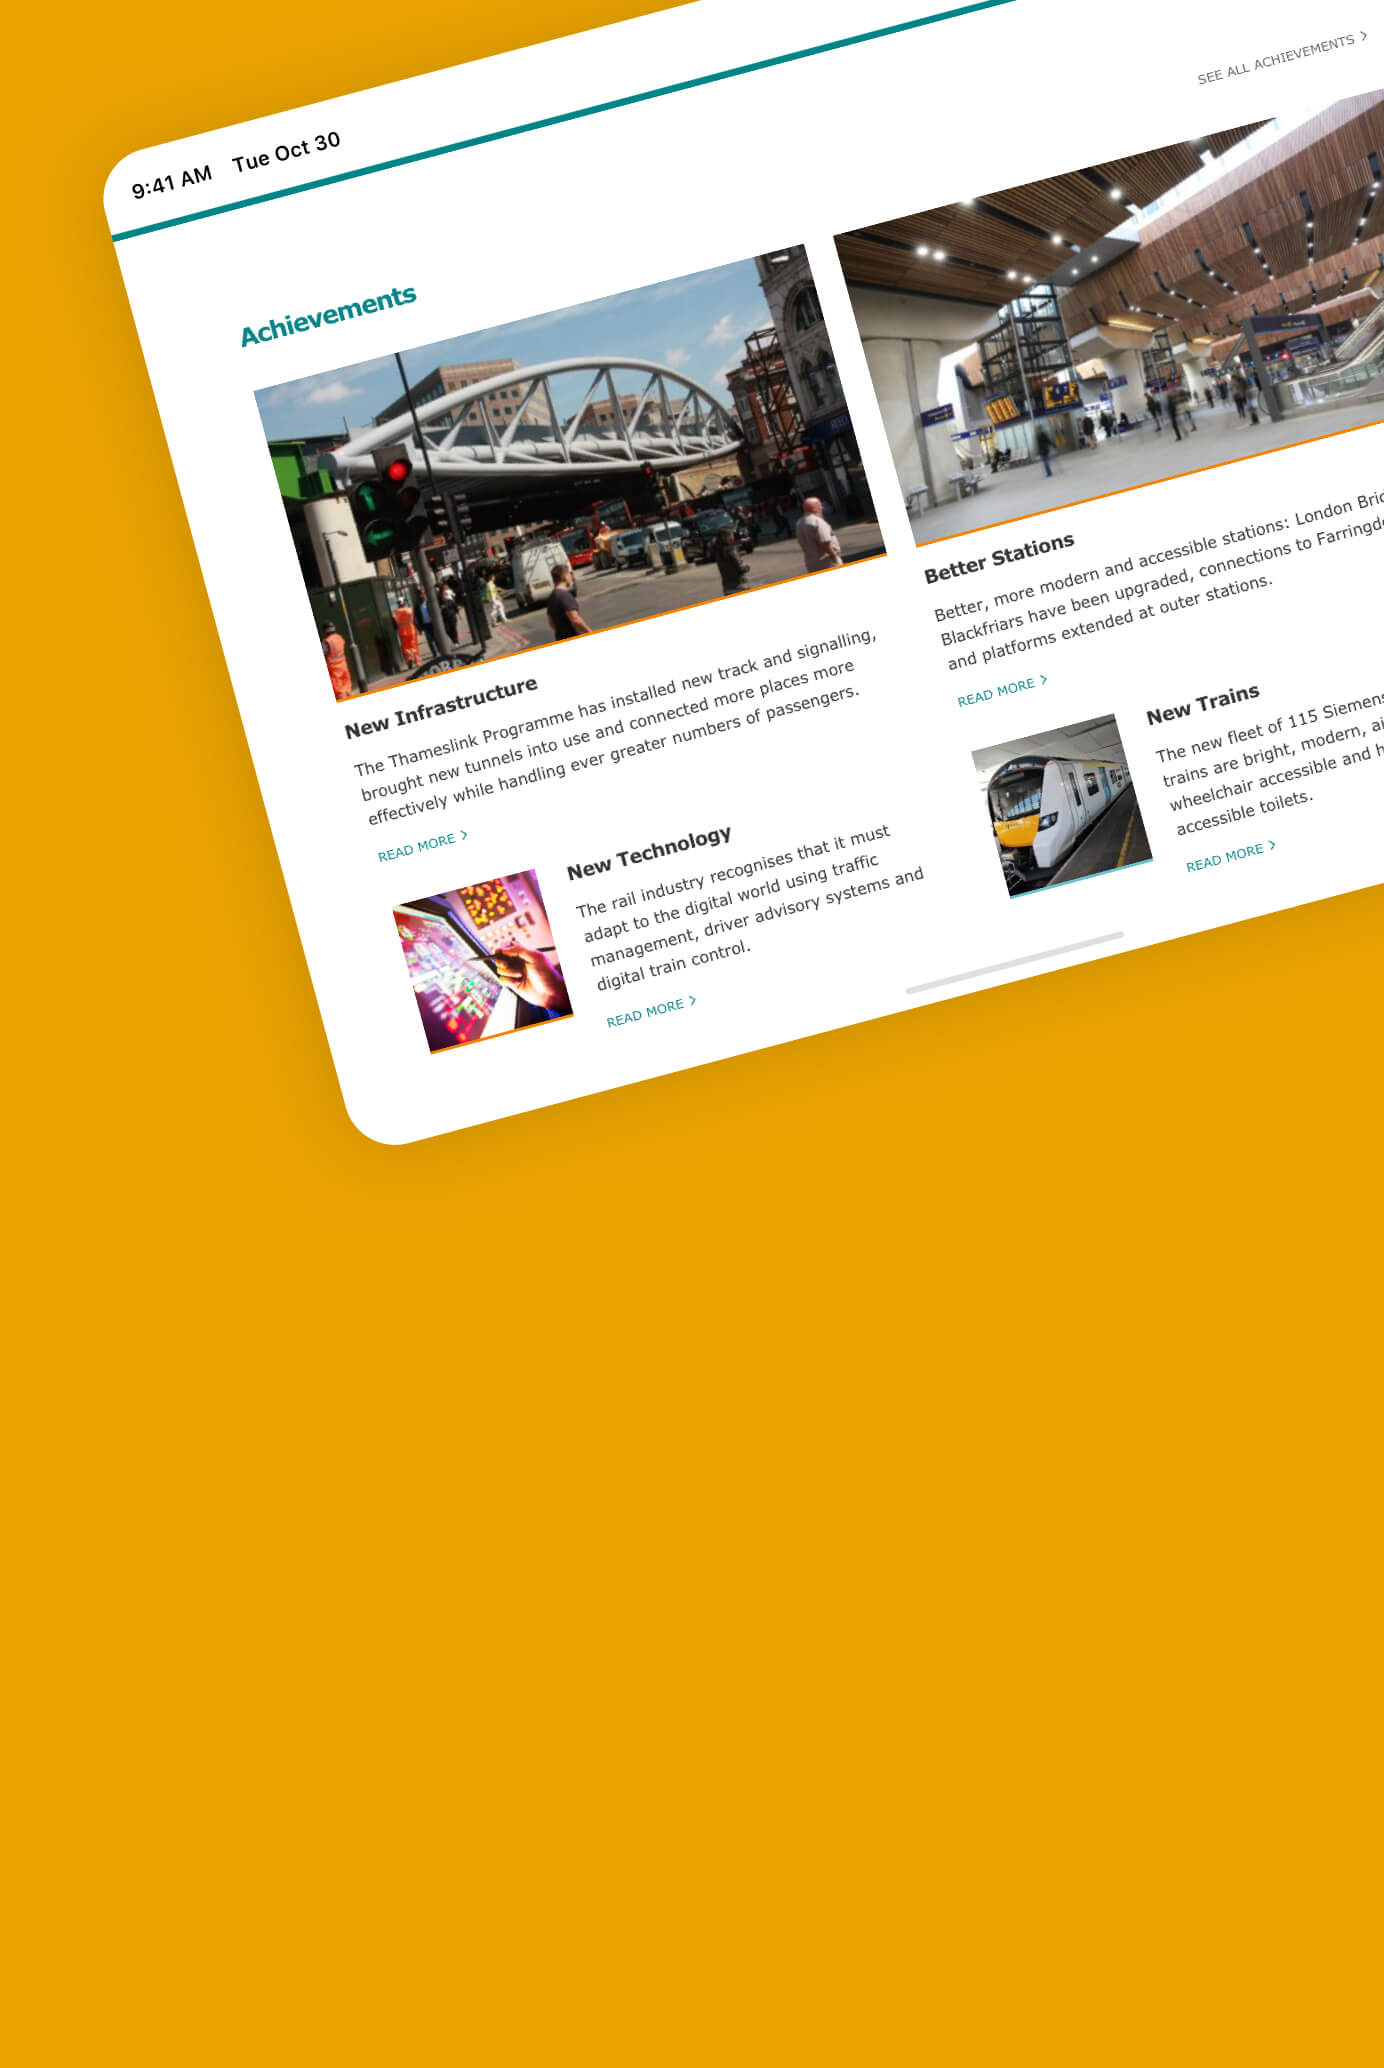 A learning legacy website for Thameslink Programme